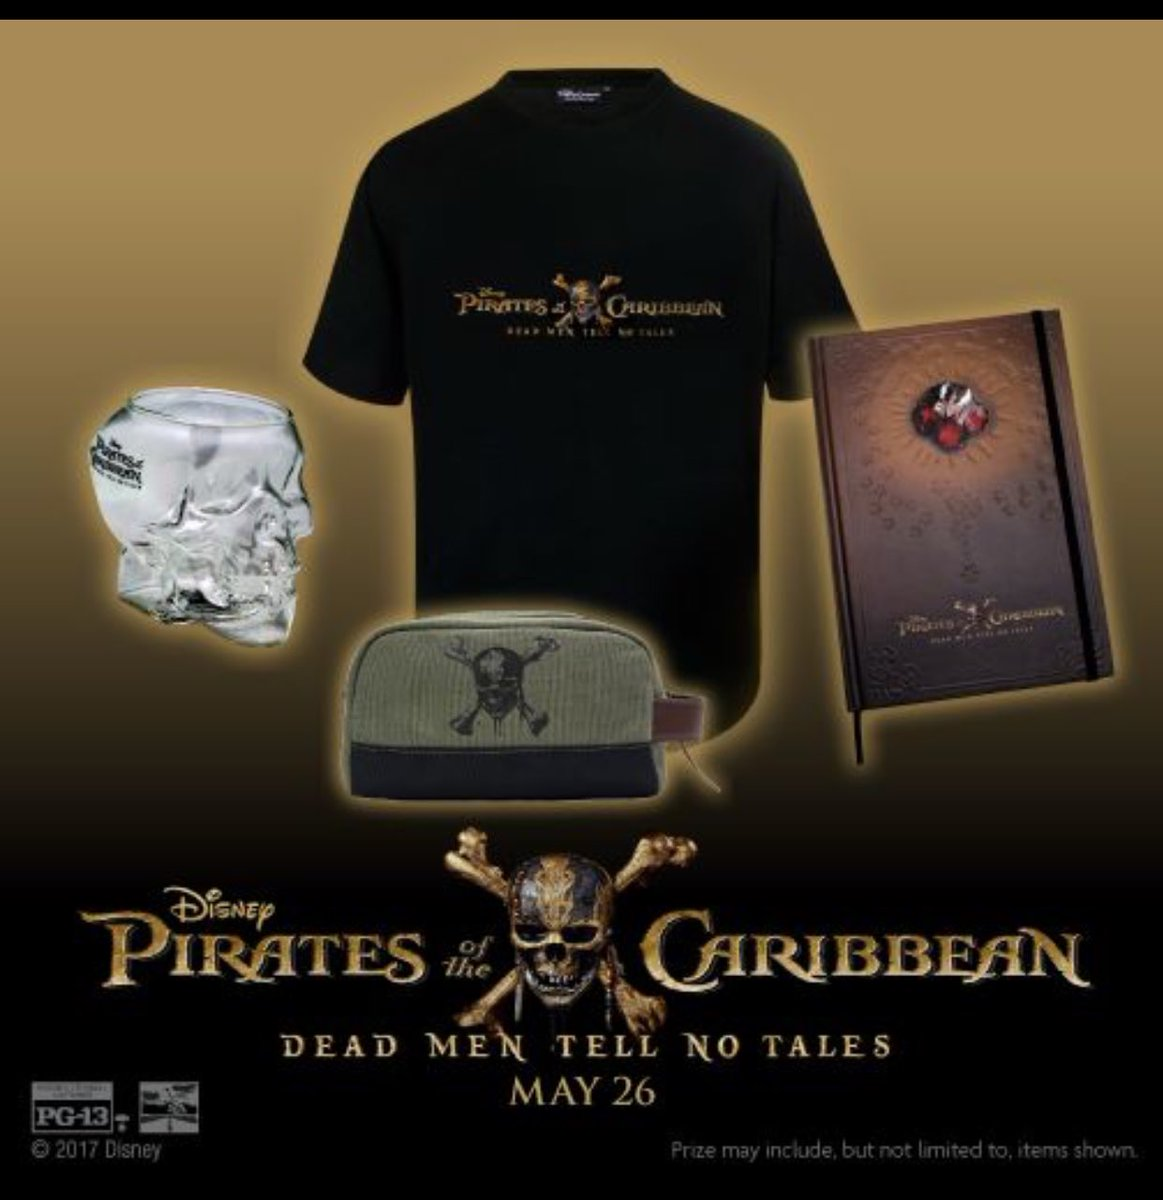 Want to win this prize pack below? Retweet this with #GSTPickMe for your chance to win!  #gstheaters #PiratesoftheCaribbean #pirateslife <br>http://pic.twitter.com/hC2aLIGcrF